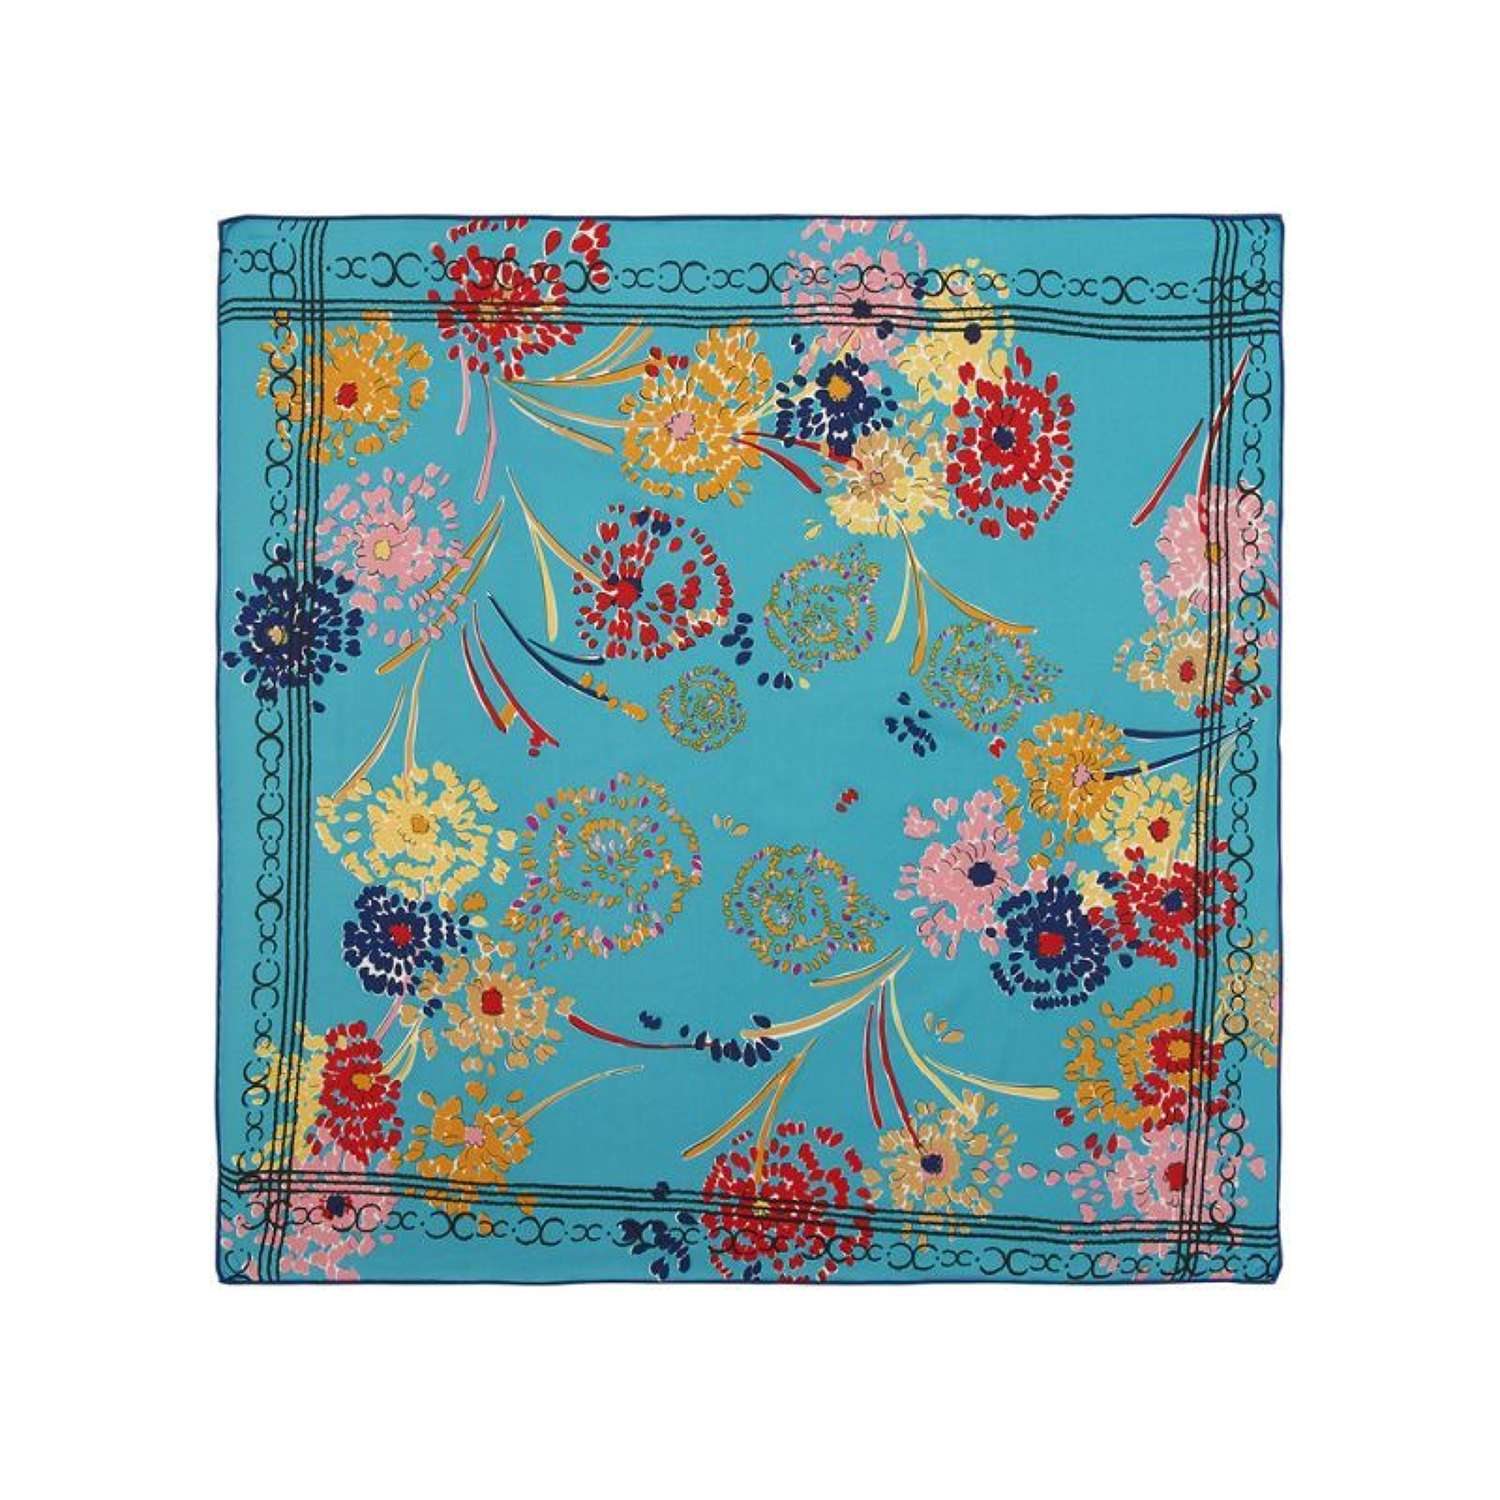 Rose Fox London - Ocean Floral Silk Scarf